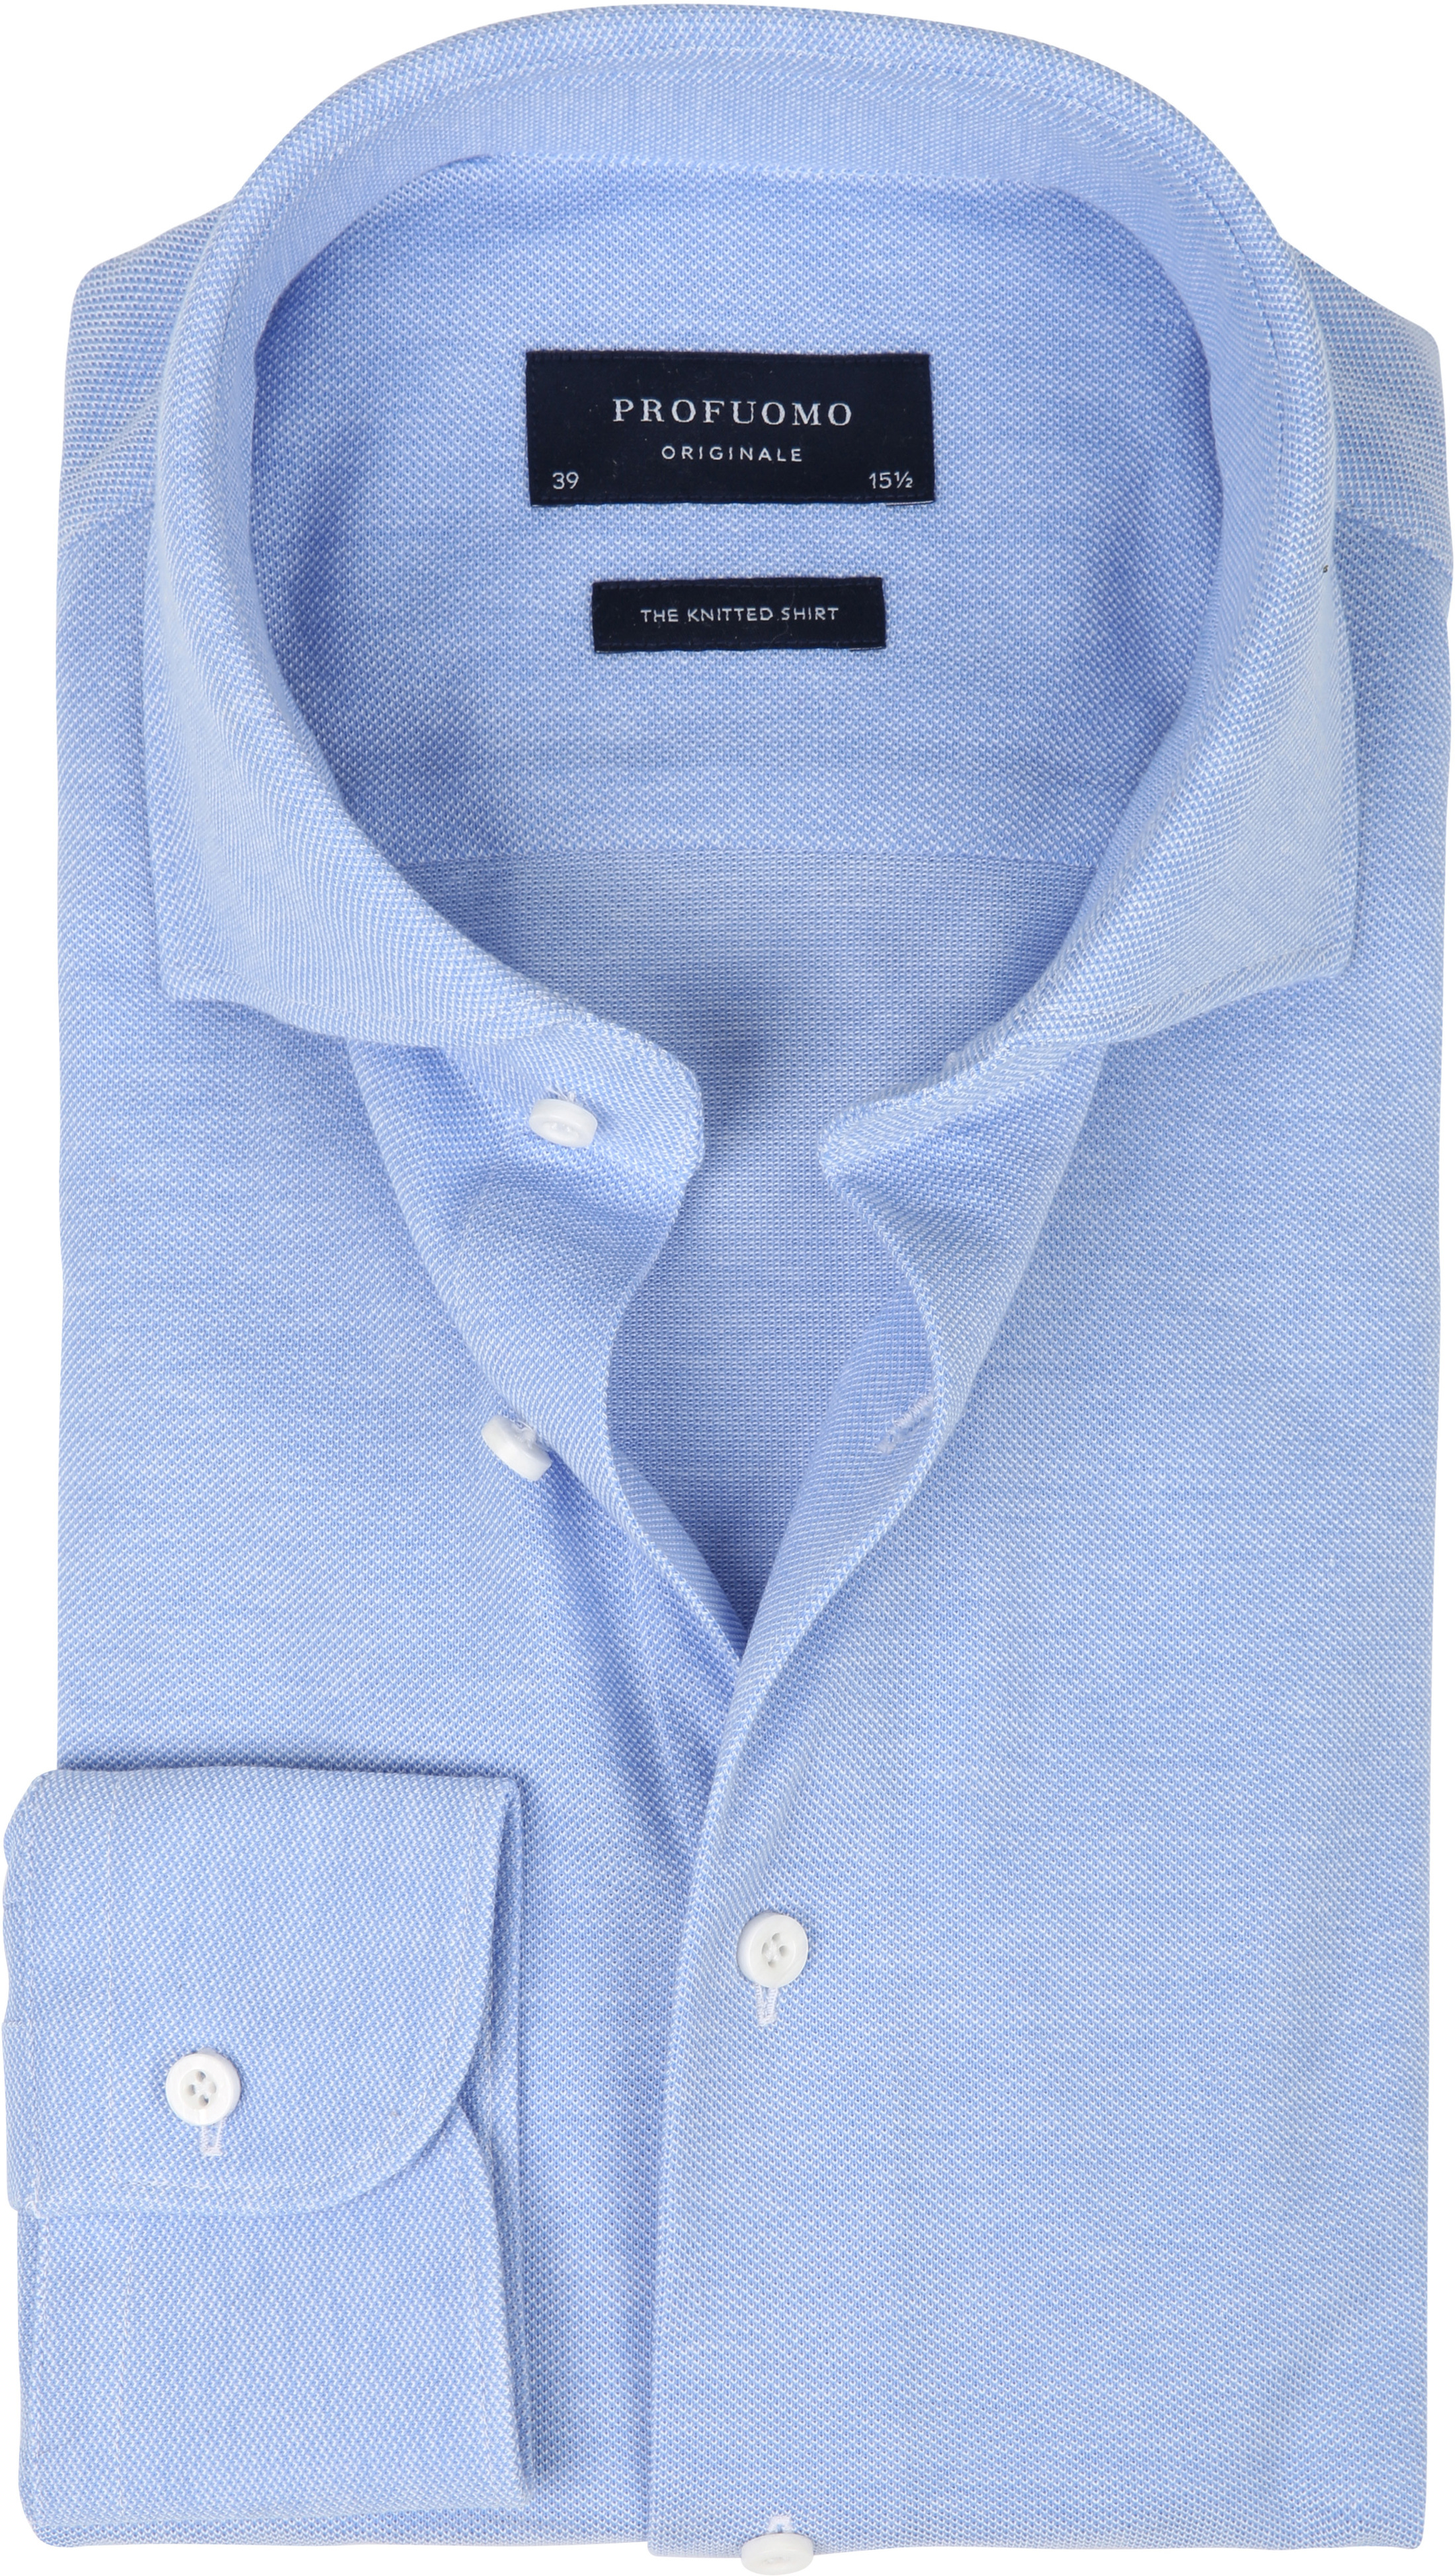 Profuomo Shirt Knitted Slim Fit Blue foto 0